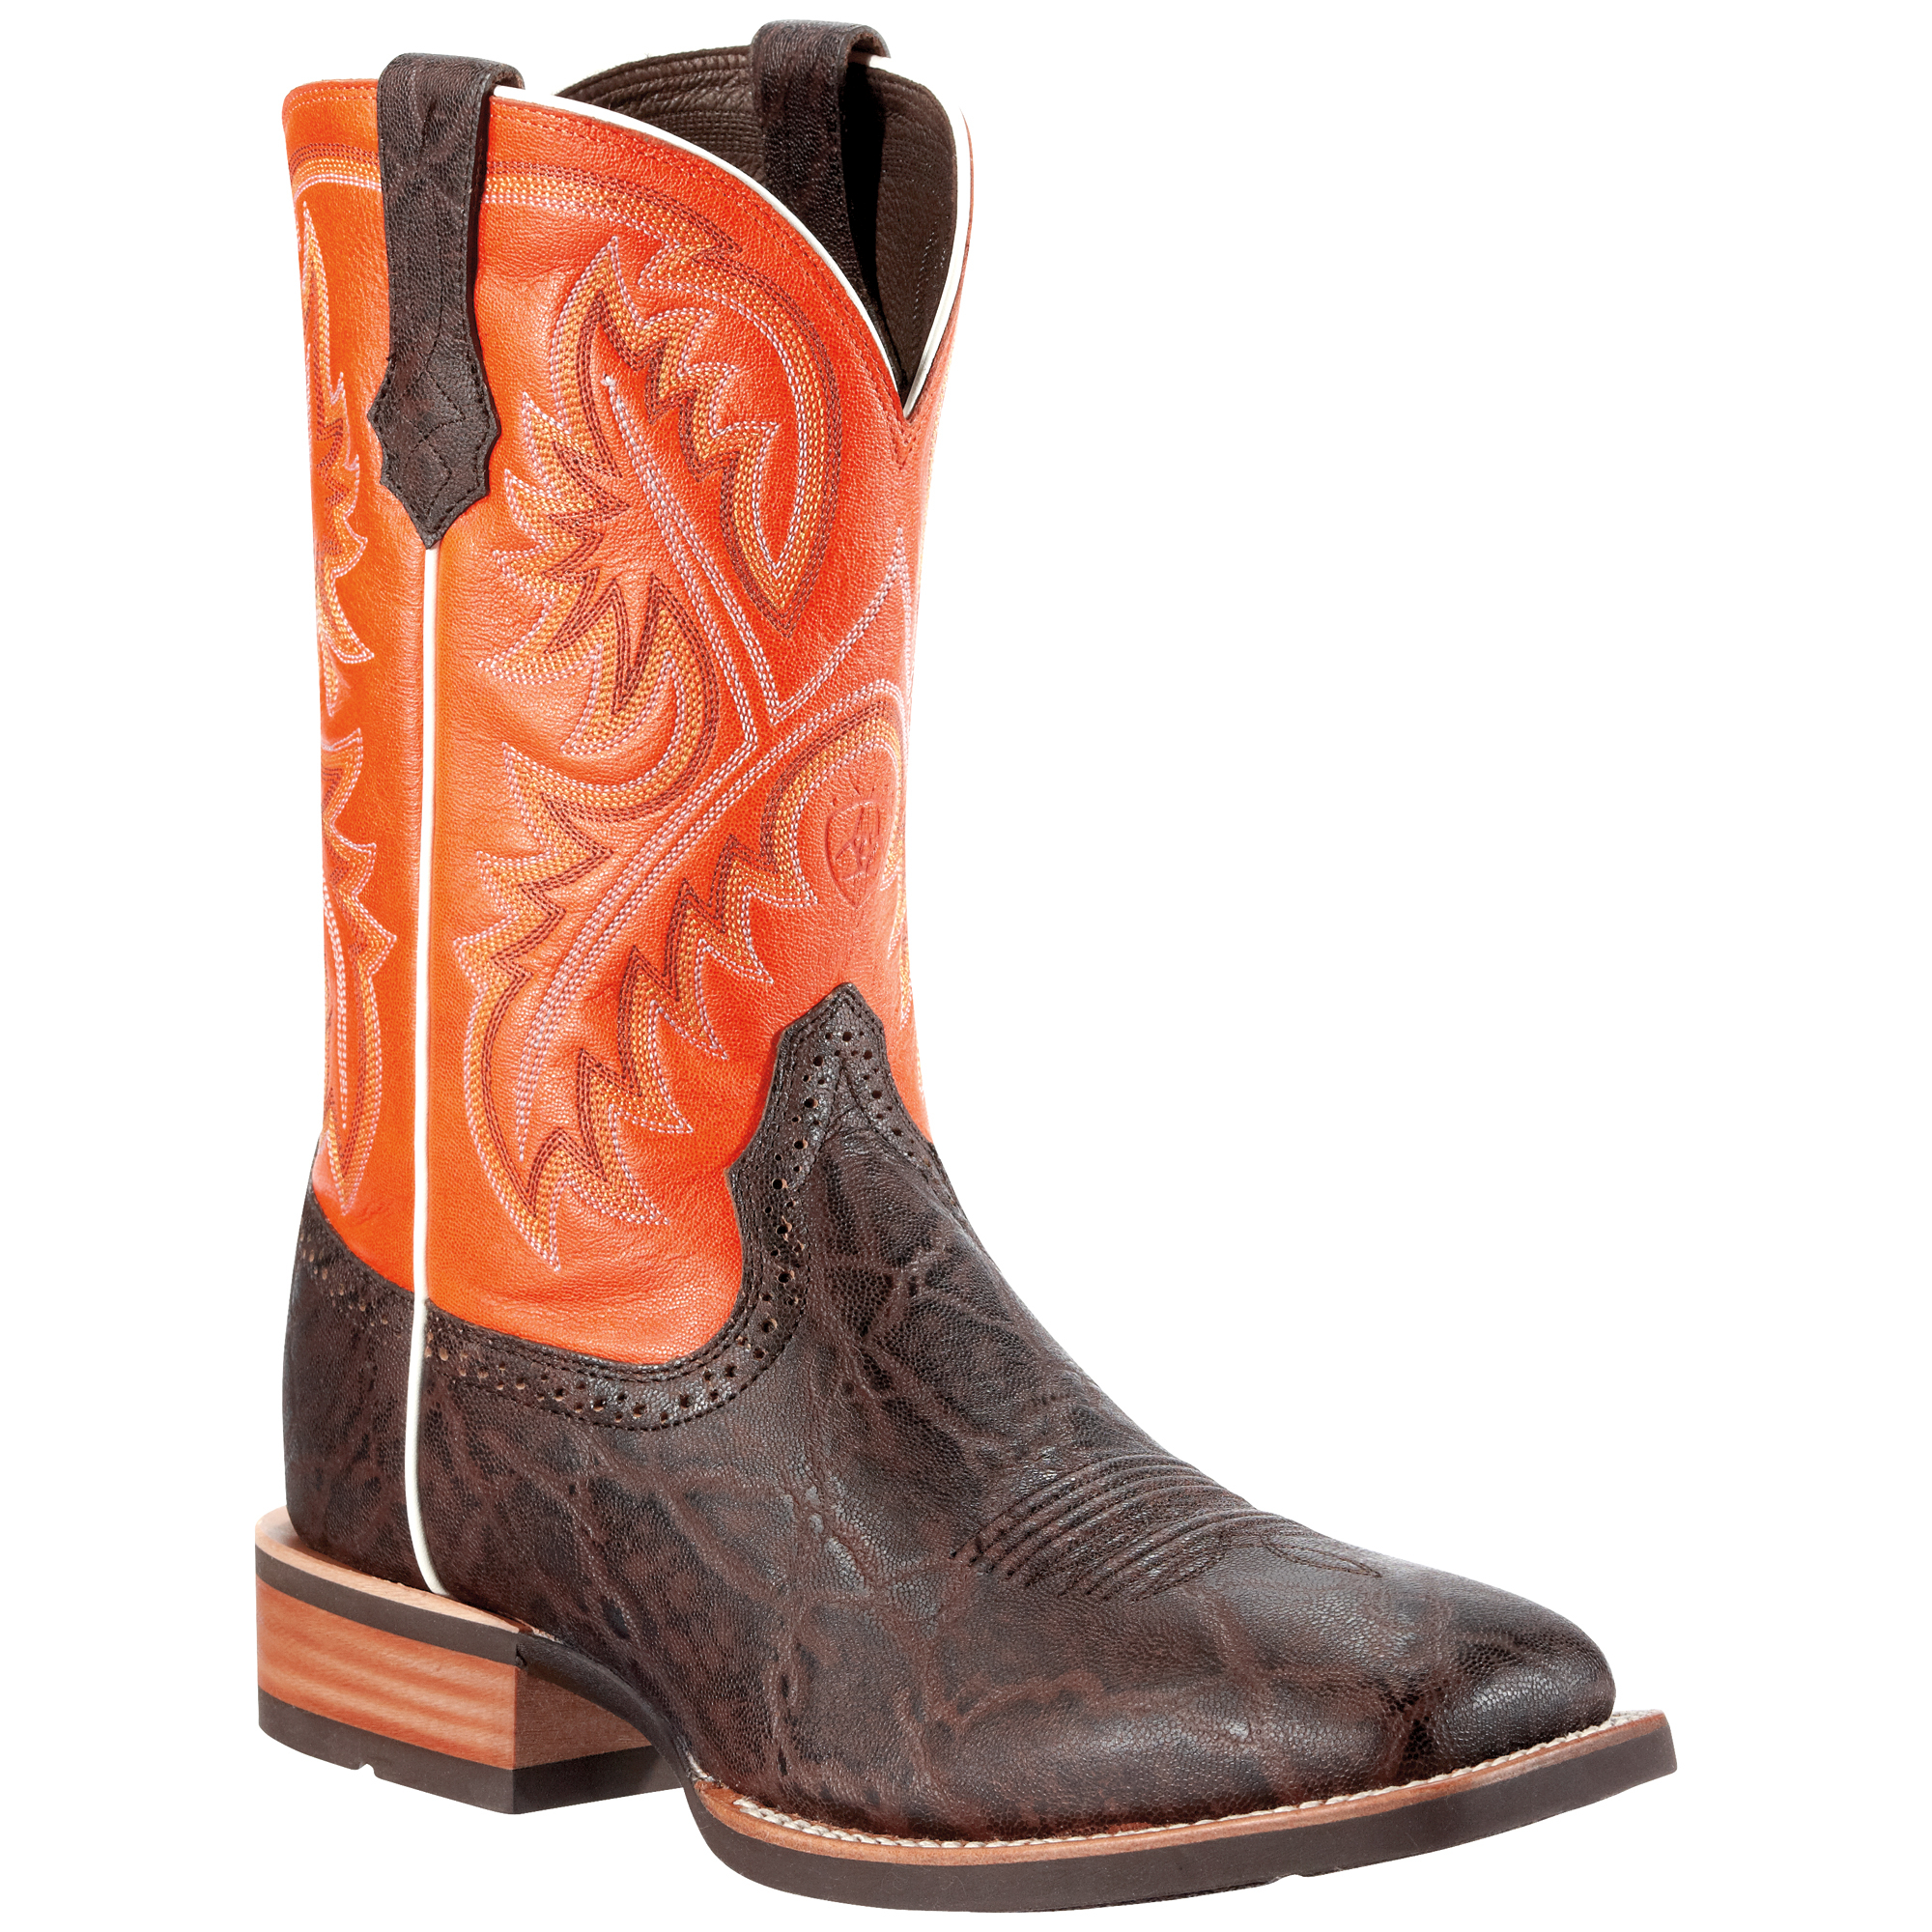 Ariat Boots Men 50eae5R2